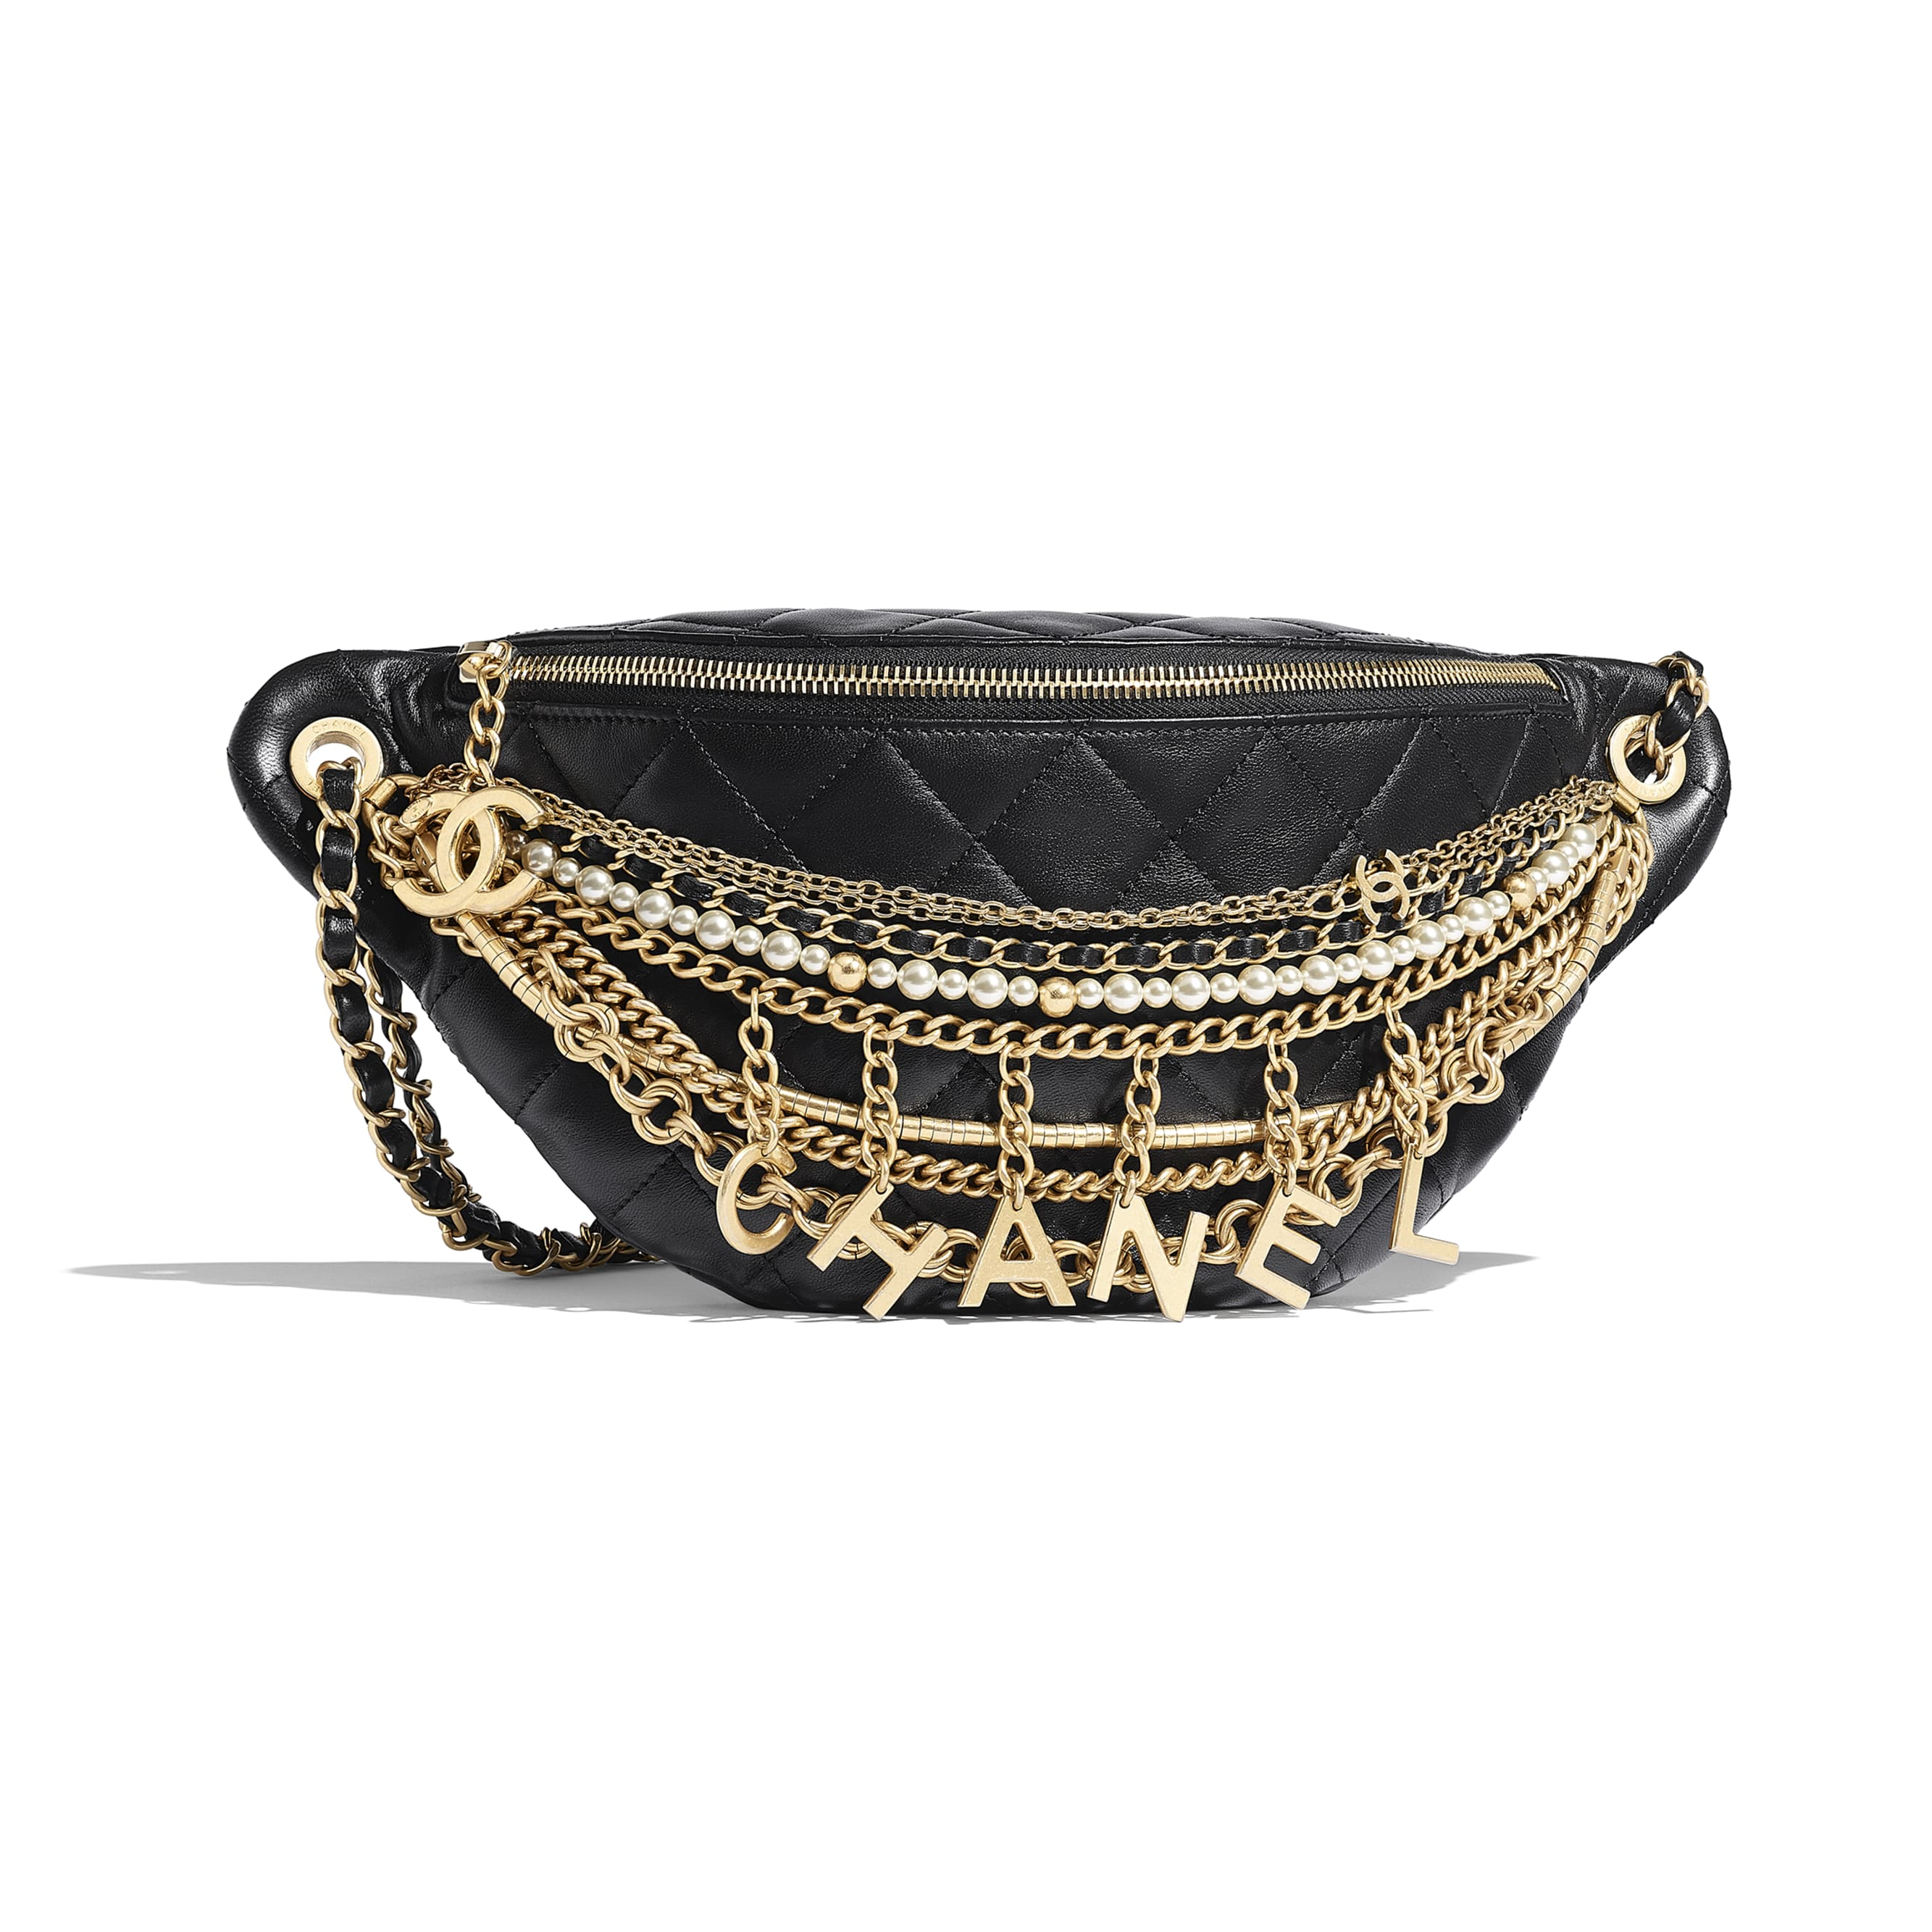 942571be Lambskin, Gold-Tone & Silver-Tone Metal Black Waist Bag | CHANEL